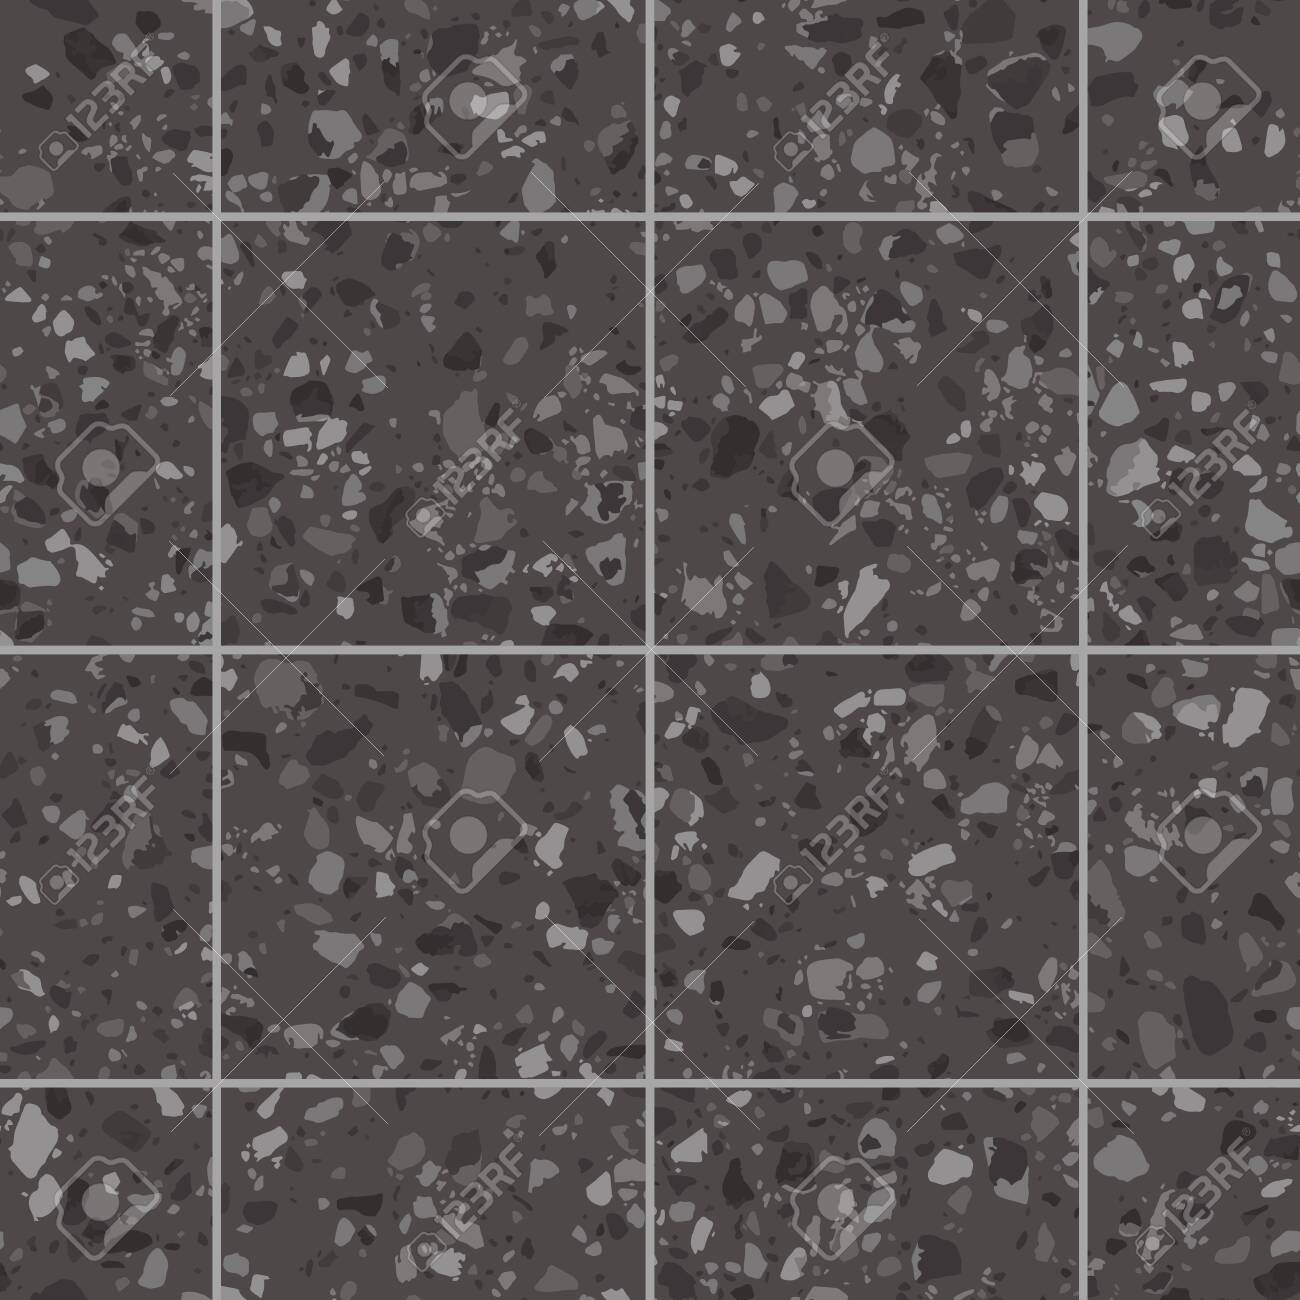 Black Granite Terrazzo Flooring Texture With Square Tiles Vector Royalty Free Cliparts Vectors And Stock Illustration Image 138980902